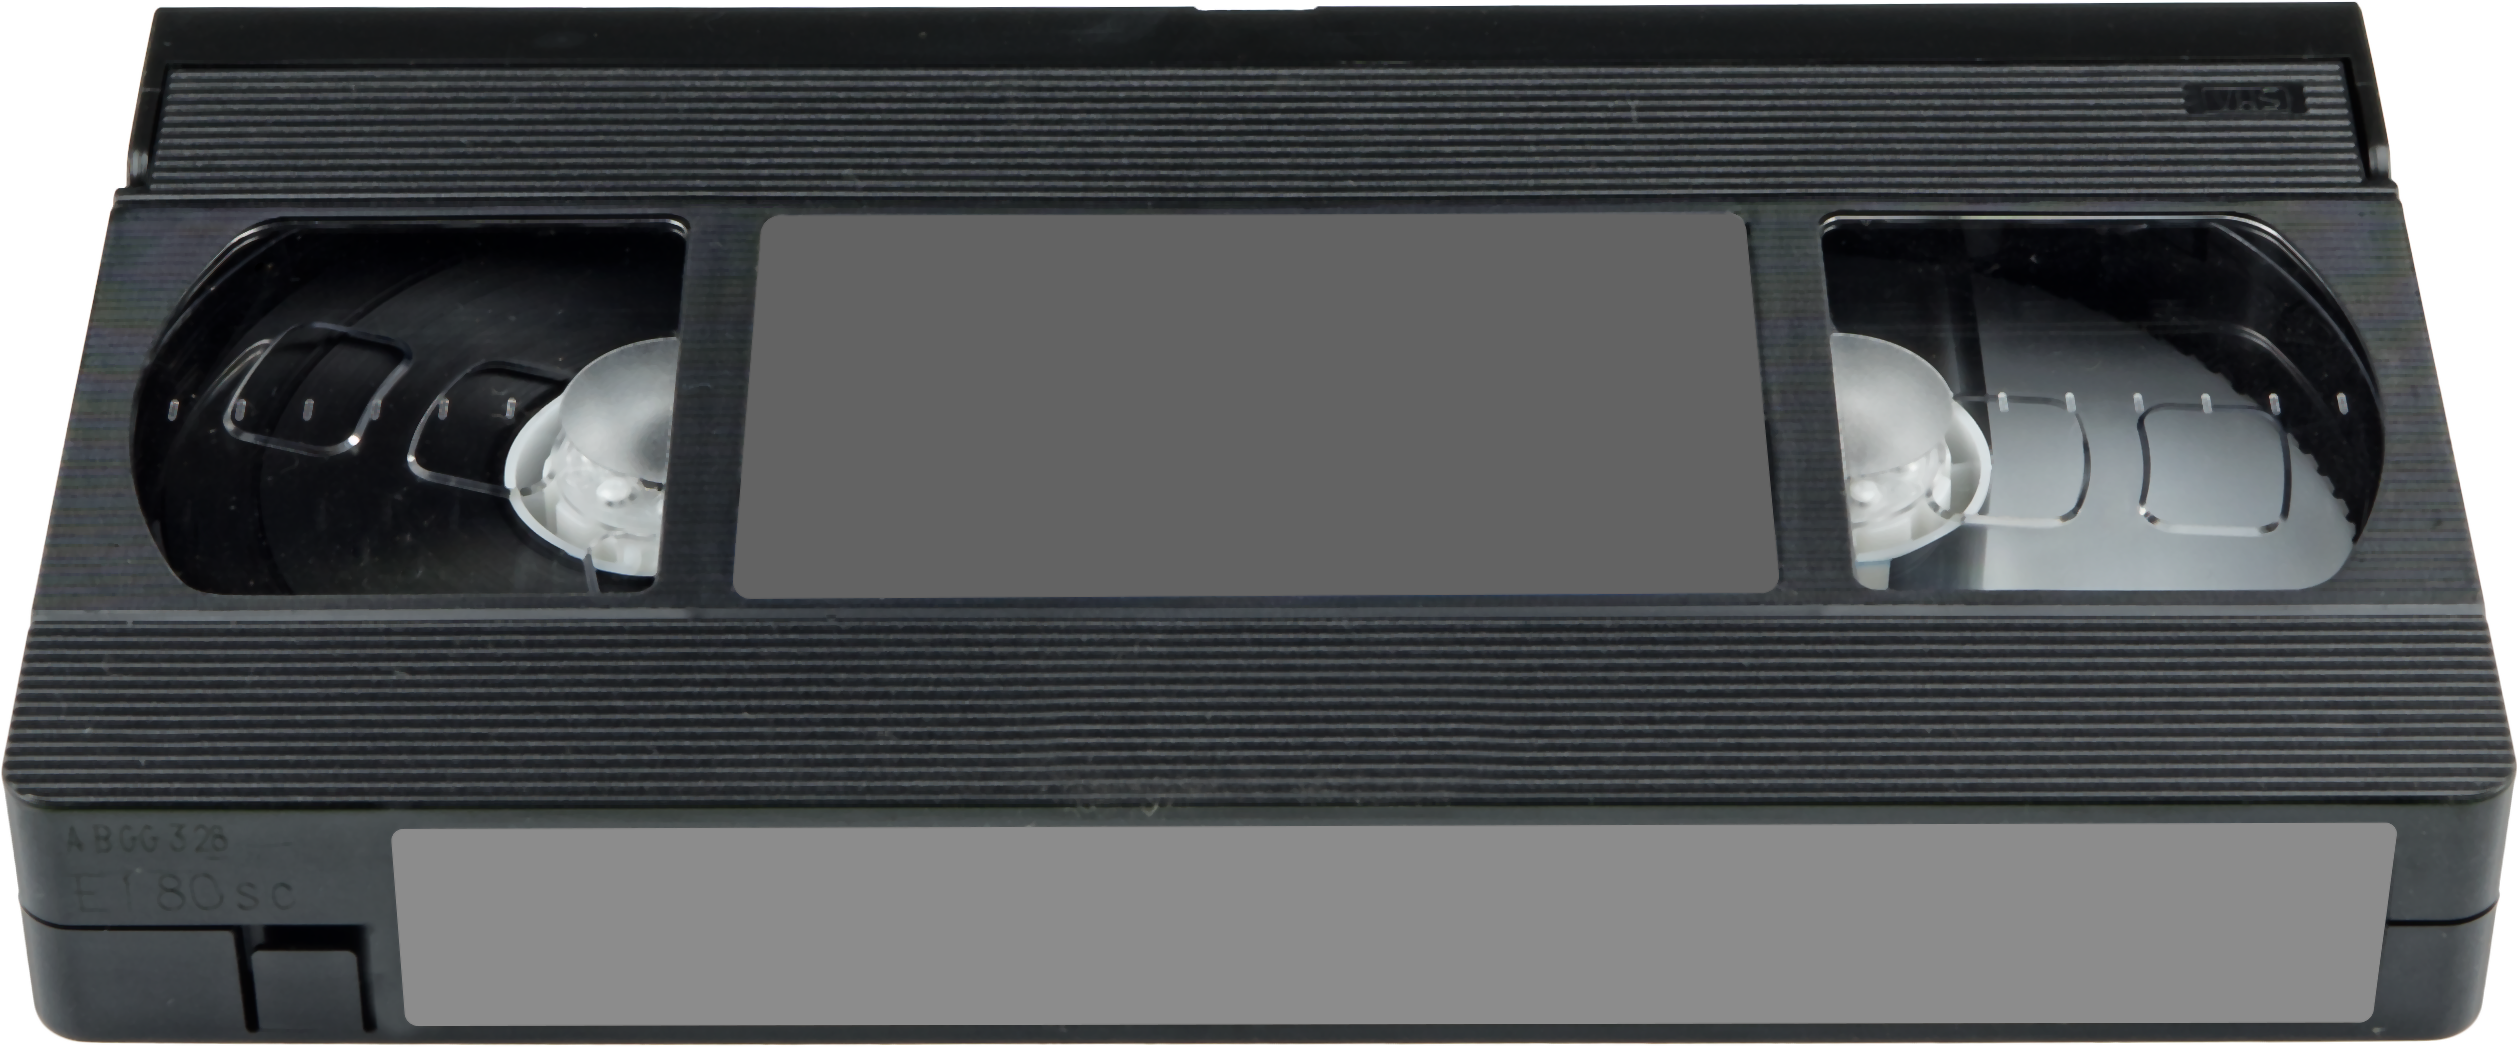 Vhs Tape PNG Transparent Vhs Tape.PNG Images..